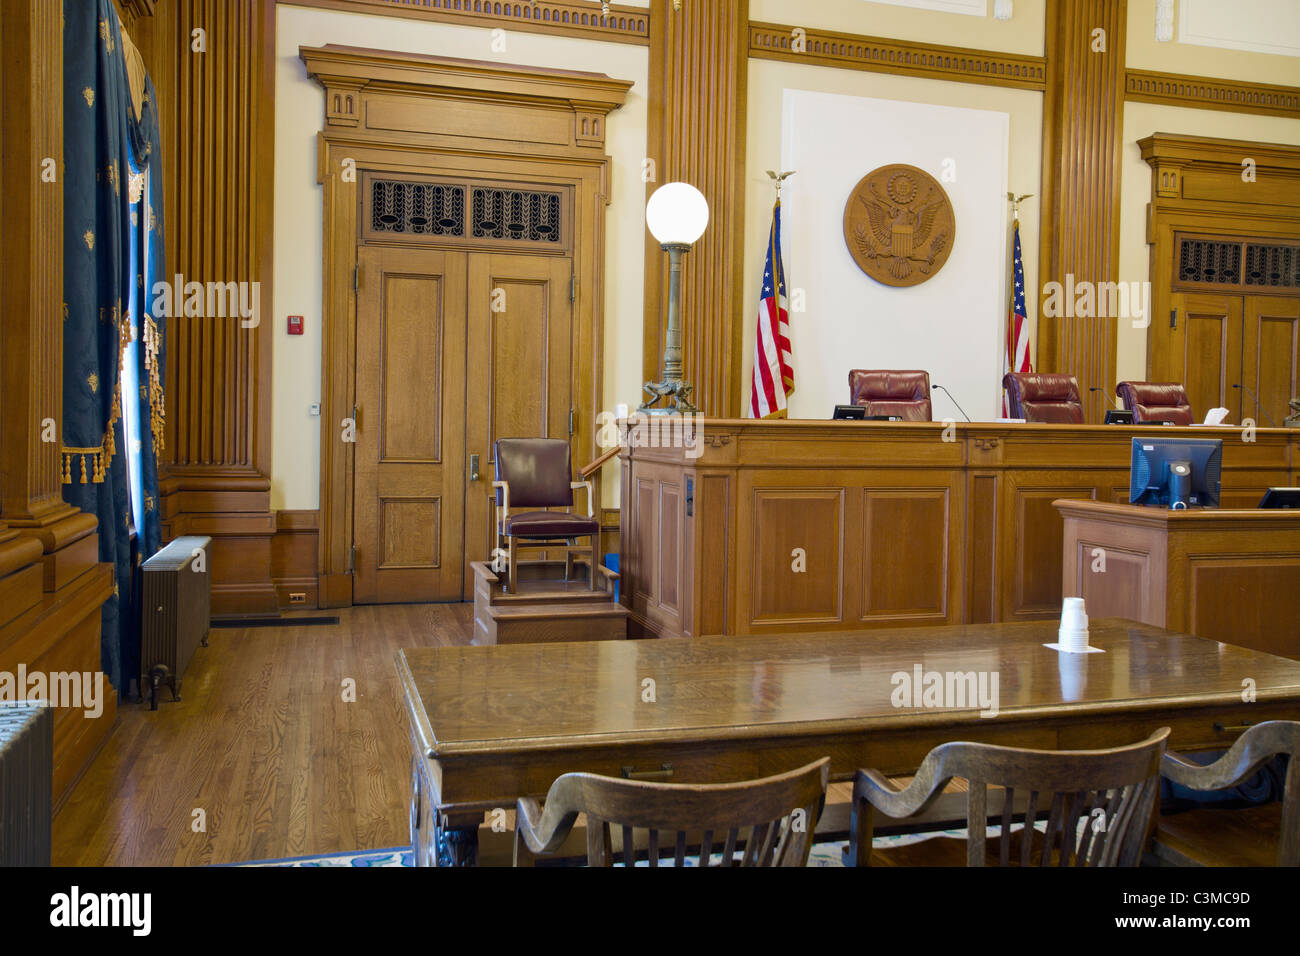 Court of Appeals Courtroom in Pioneer Courthouse - Stock Image